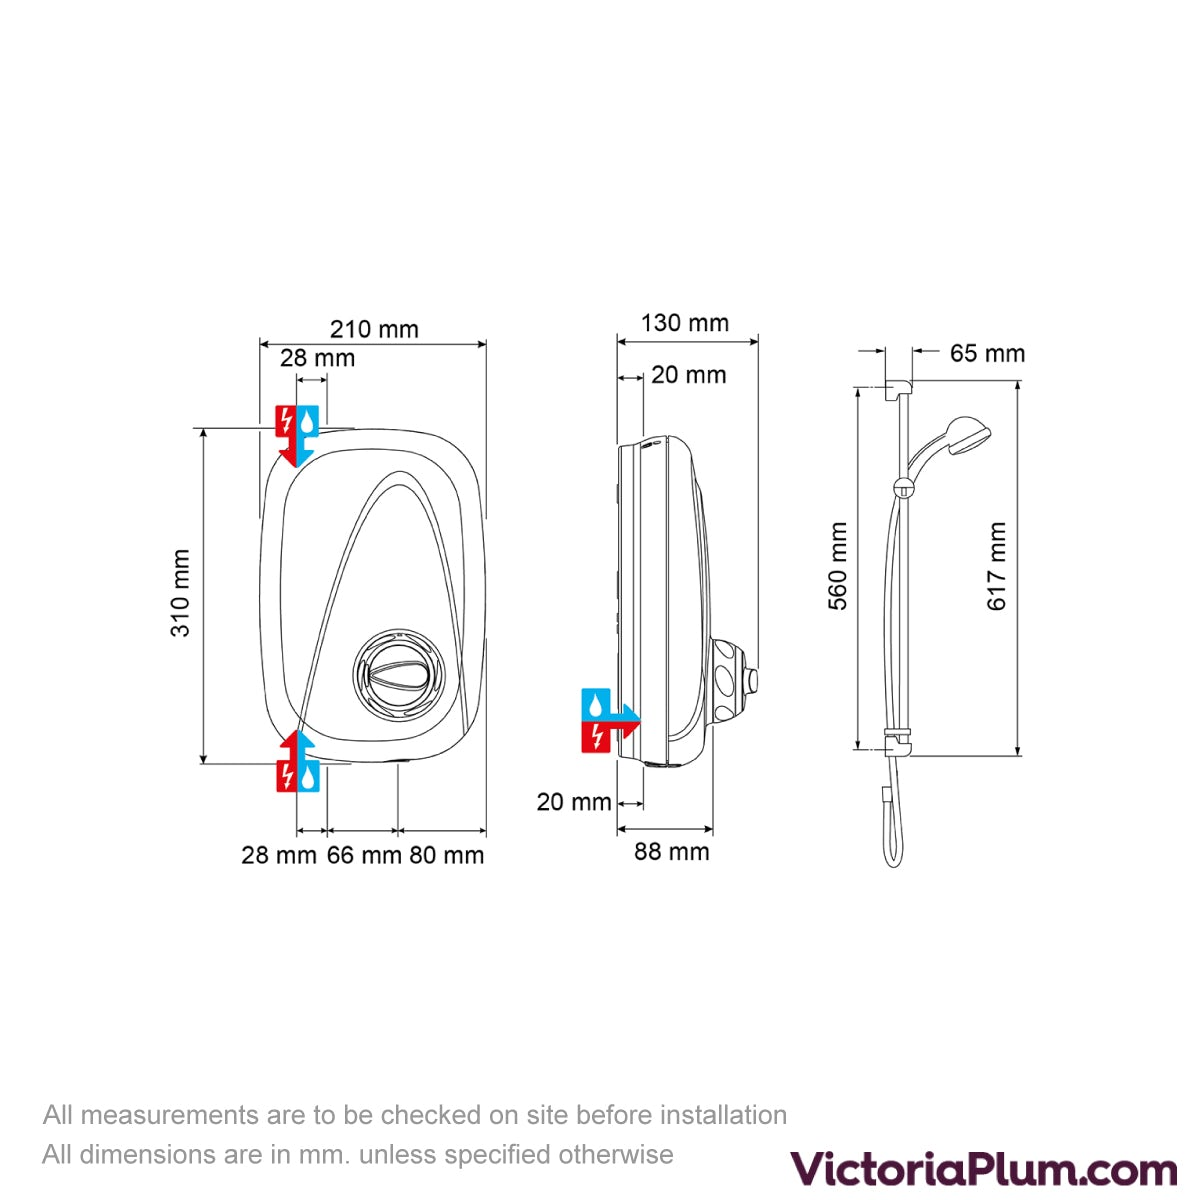 Dimensions for Mira Vigour manual power shower